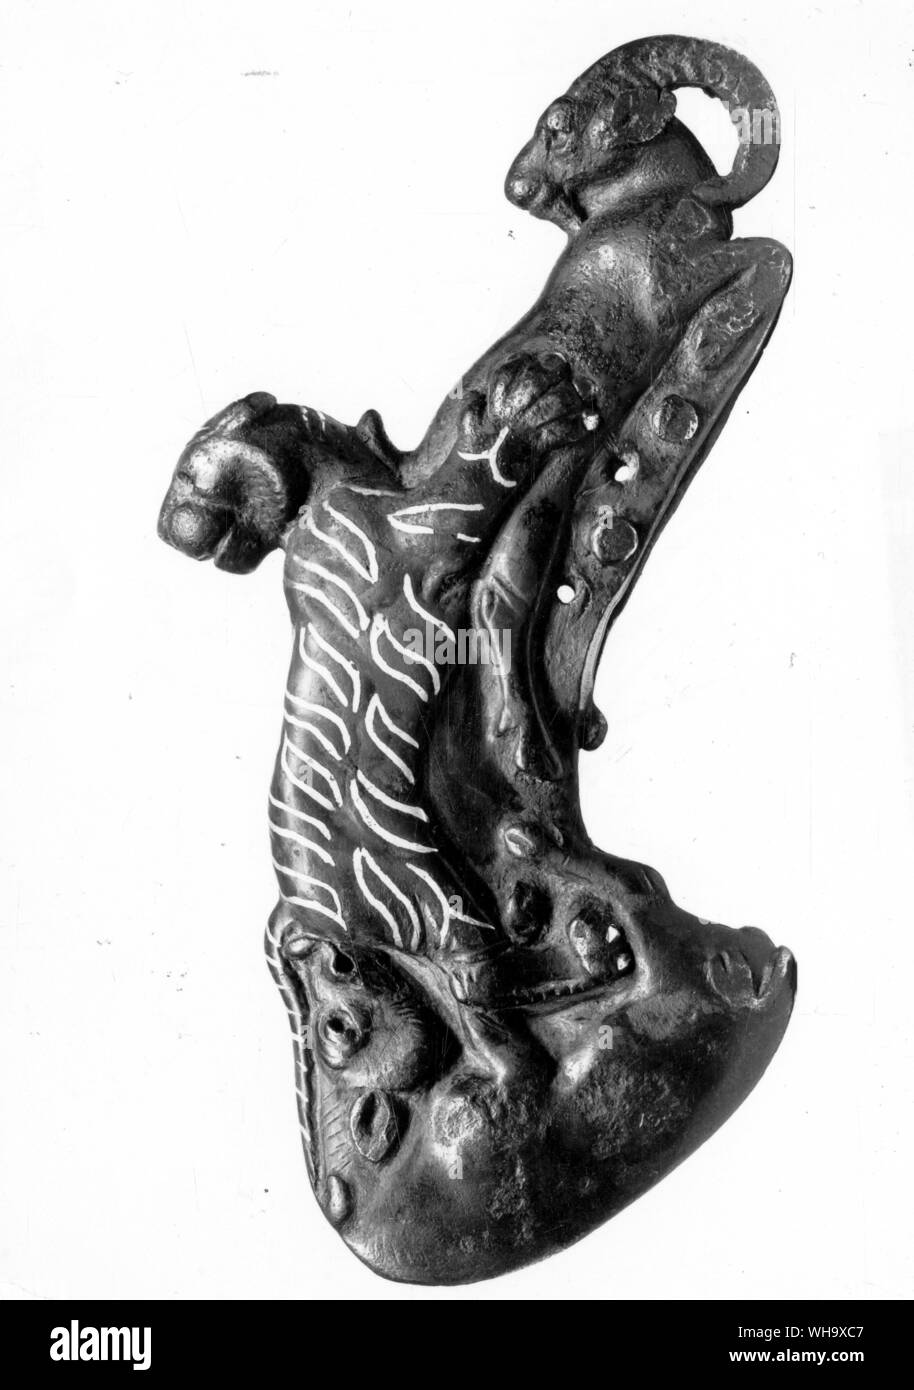 Persian ceremonian bronze axe head with silver inlay, from the Oxus treasure, 900-700 BC Stock Photo